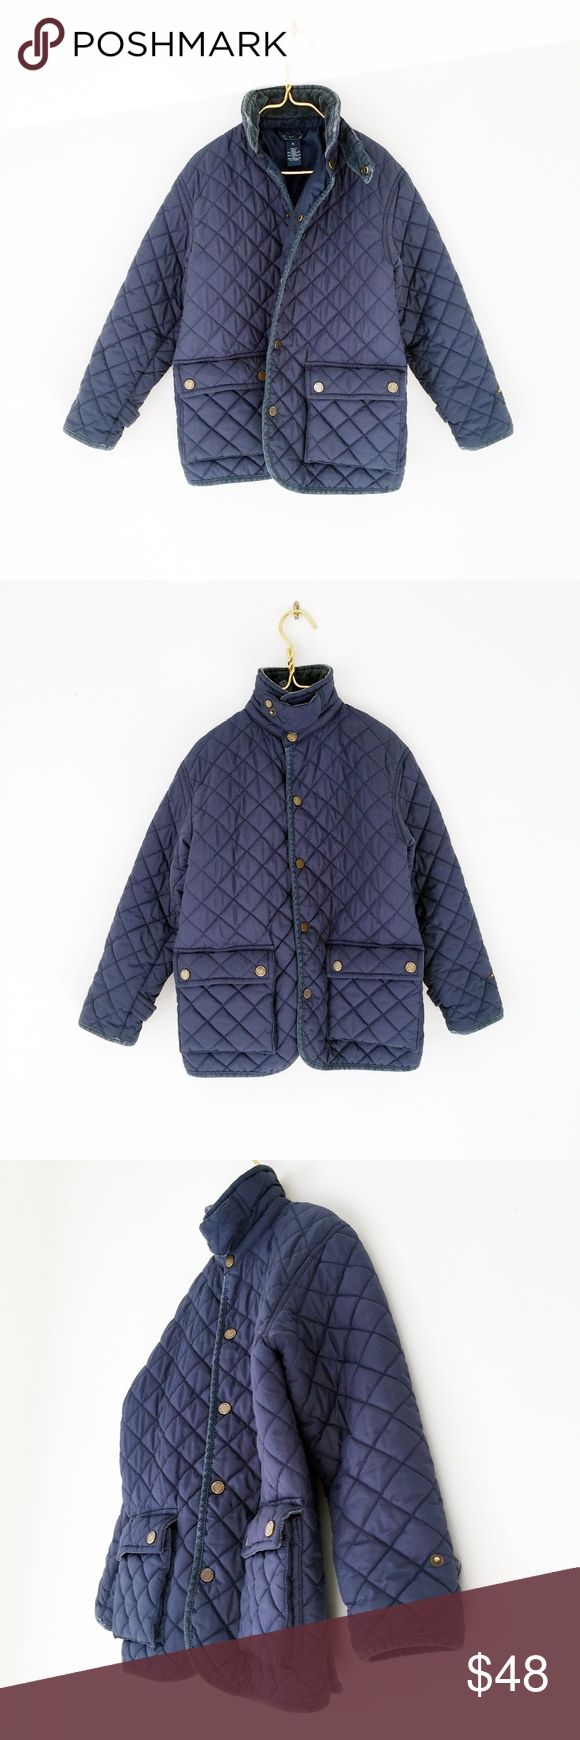 "RALPH LAUREN QUILTED puffer navy barn jacket 4 POLO RALPH LAUREN  classic. soft, plush  puffy quilt. quality weight construction. snaps closure.   excellent, pet/smoke free.  bottom snap has a tiny tarnished spot.  laid flat, seam - seam: chest: 16.5"" shoulders: 15"" nape to hem: 21"" shoulder to cuff: 17.5""  coat warm winter fall riding equestrian preppy ivy university college league golf navy dark utility Polo by Ralph Lauren Jackets & Coats"